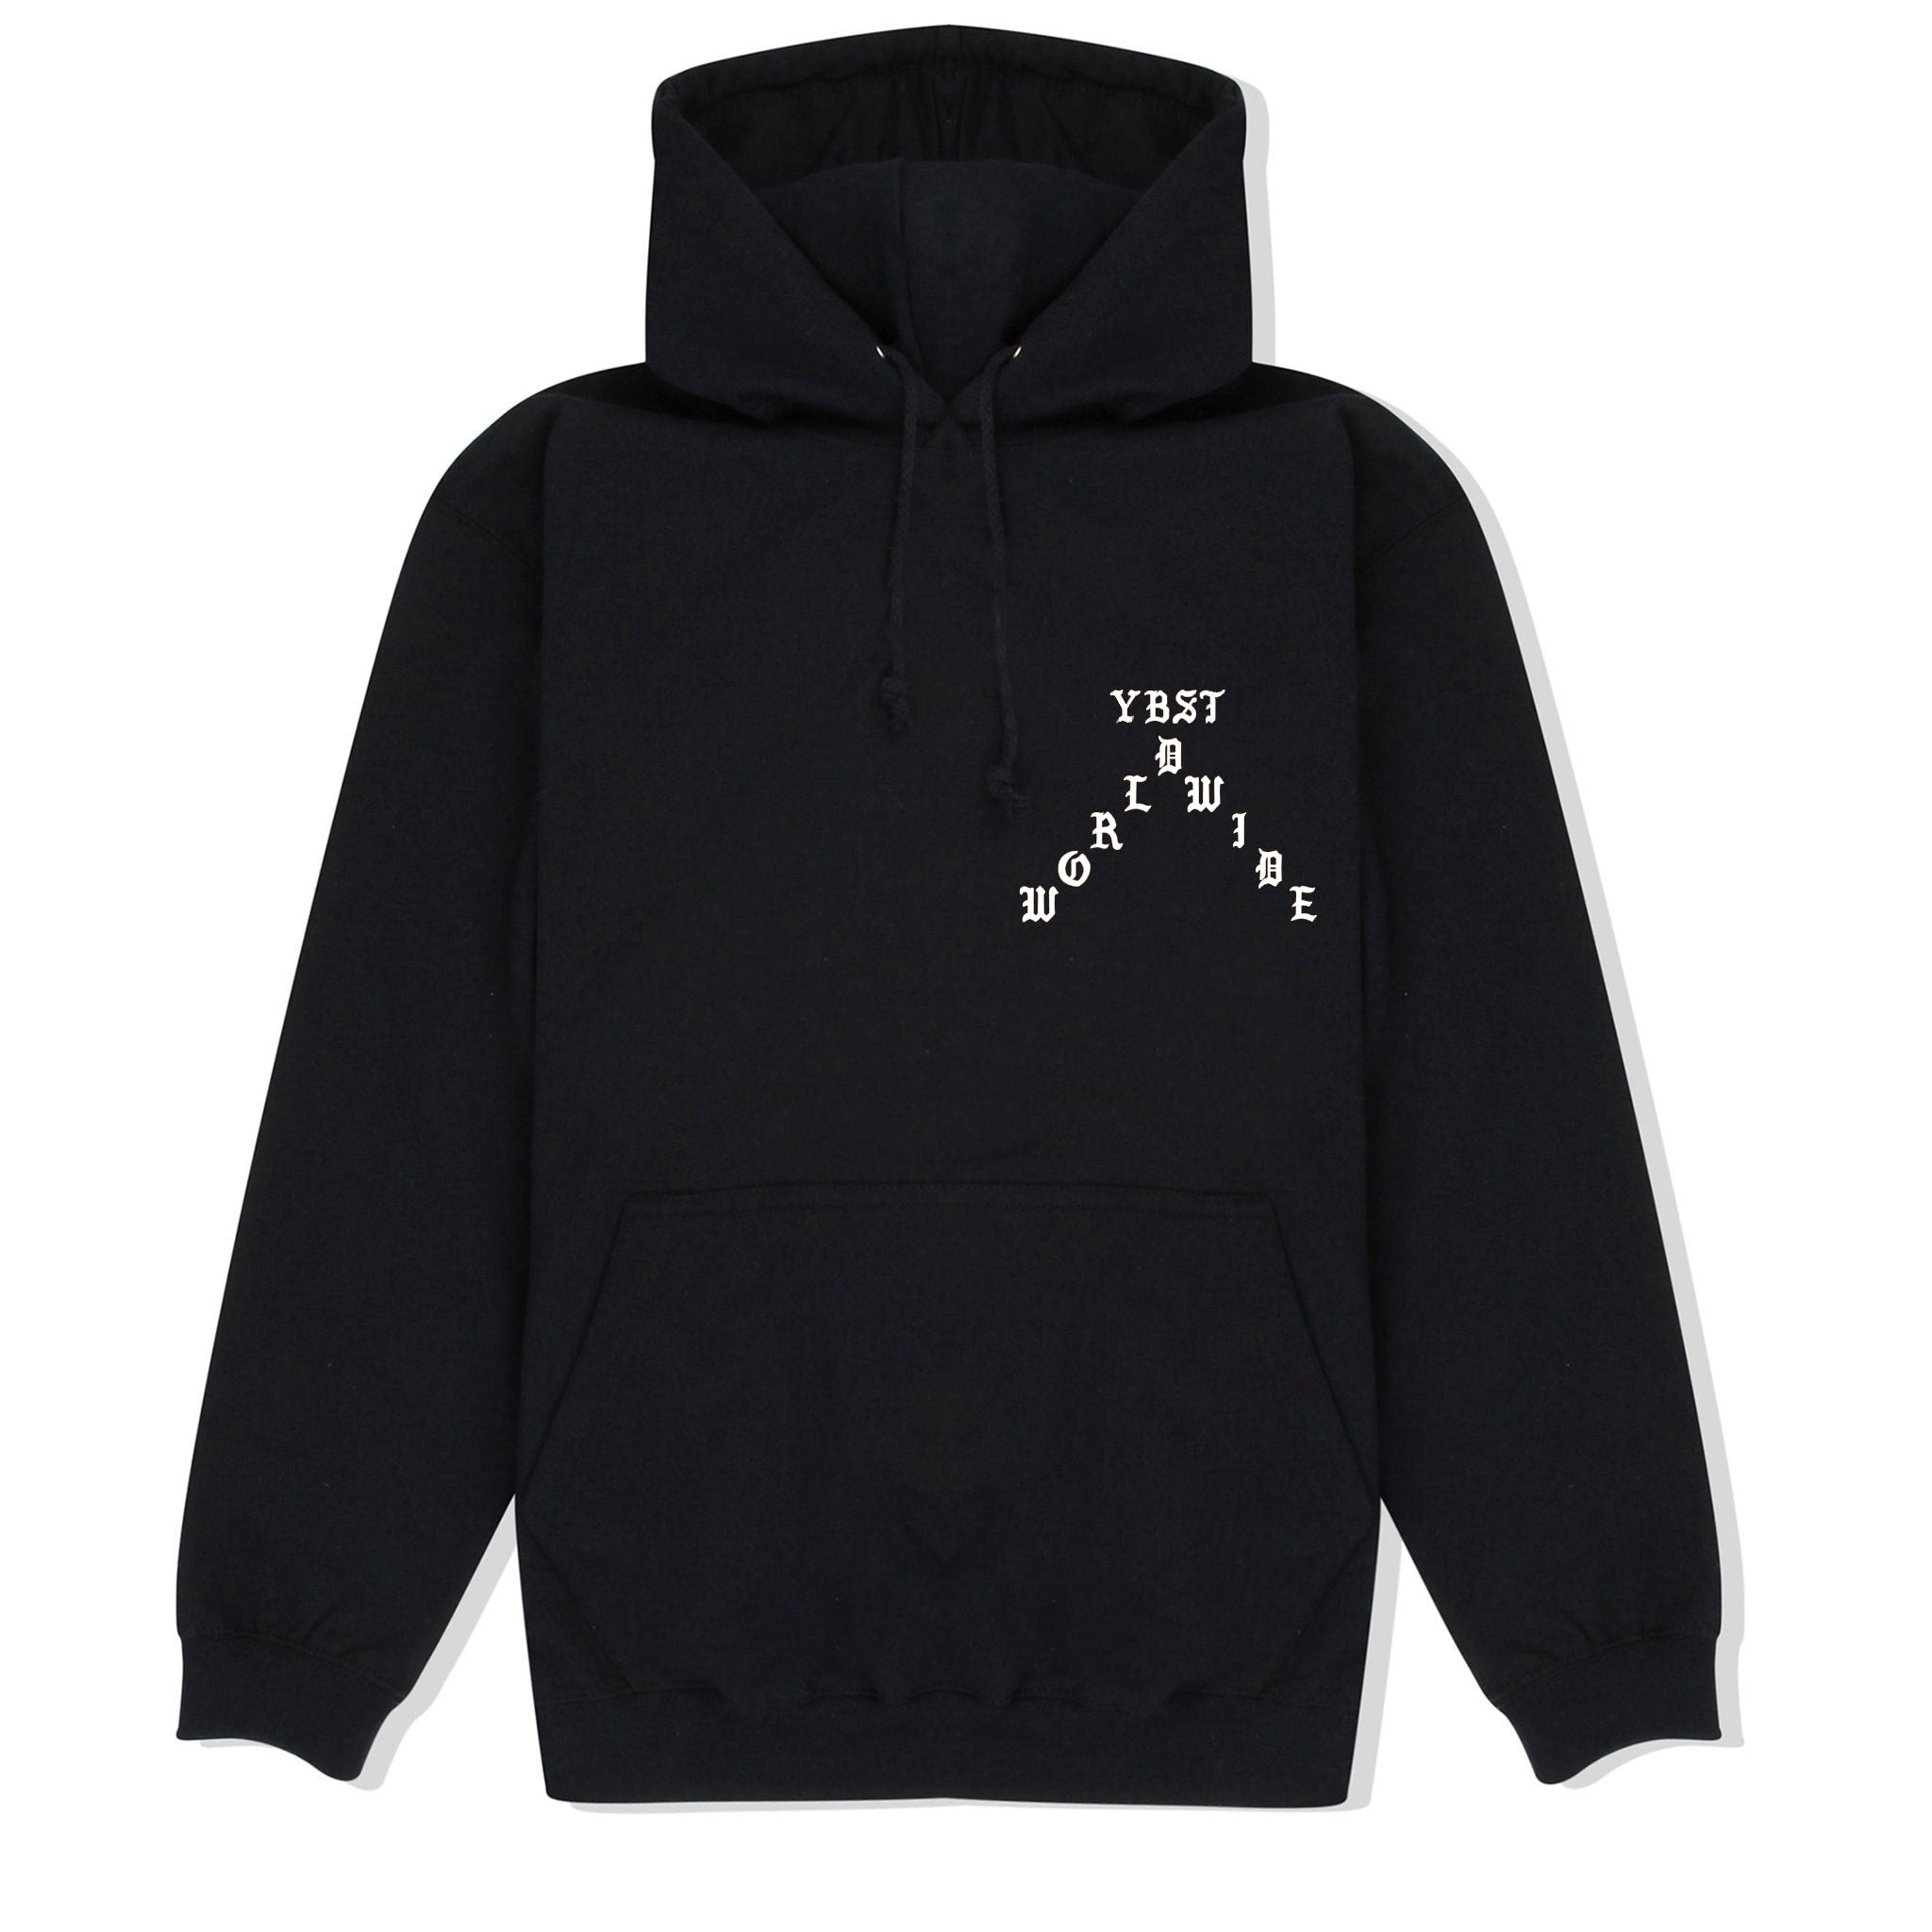 YBST Gothic Hoodie Black and White Front